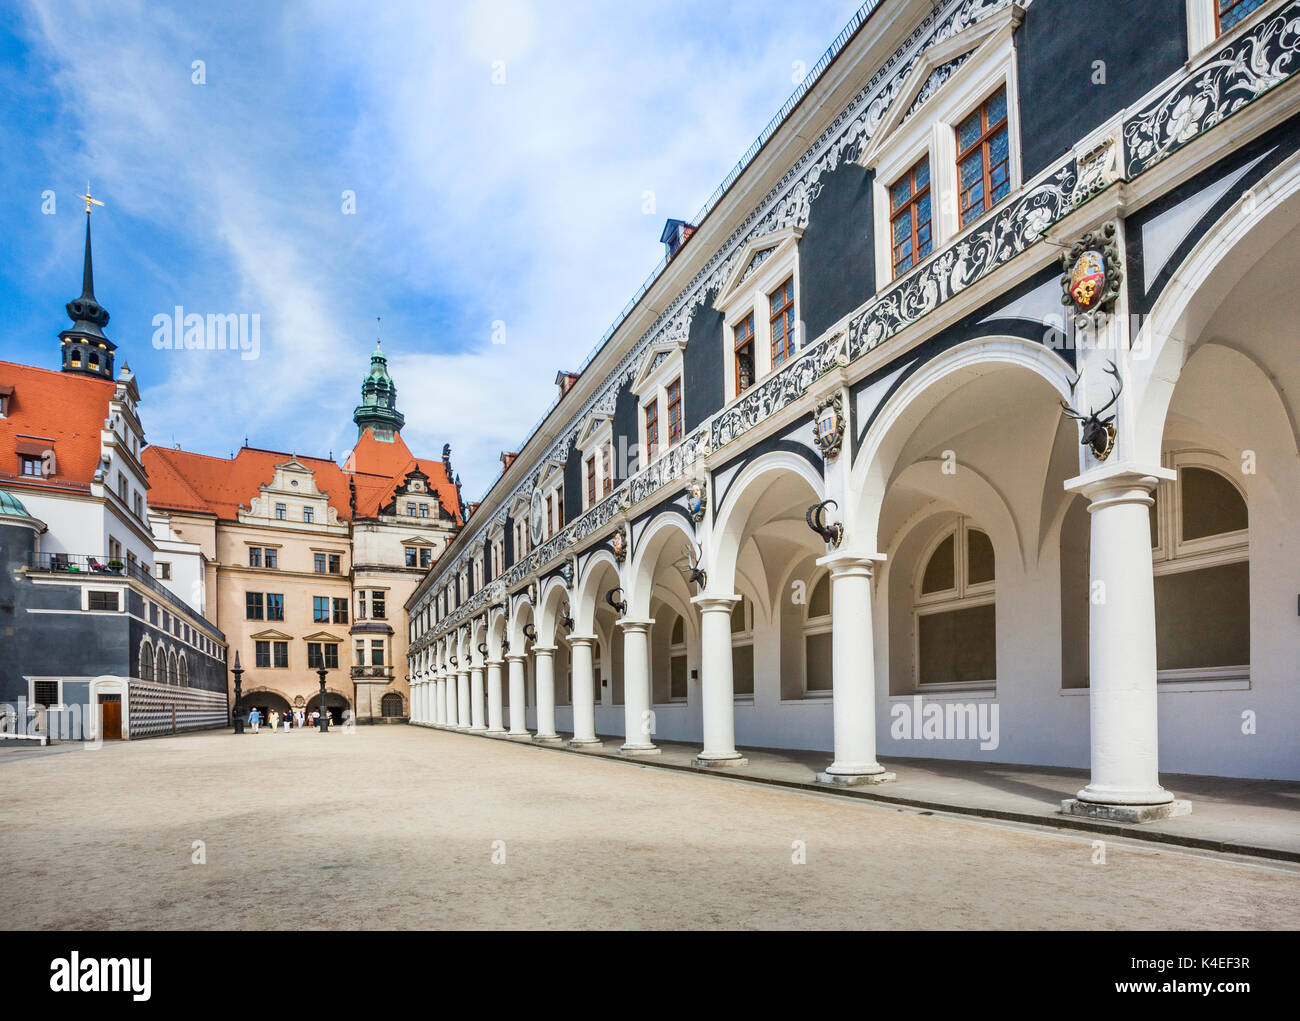 Germany Saxony The Long Arcade In The Stable Courtyard Of